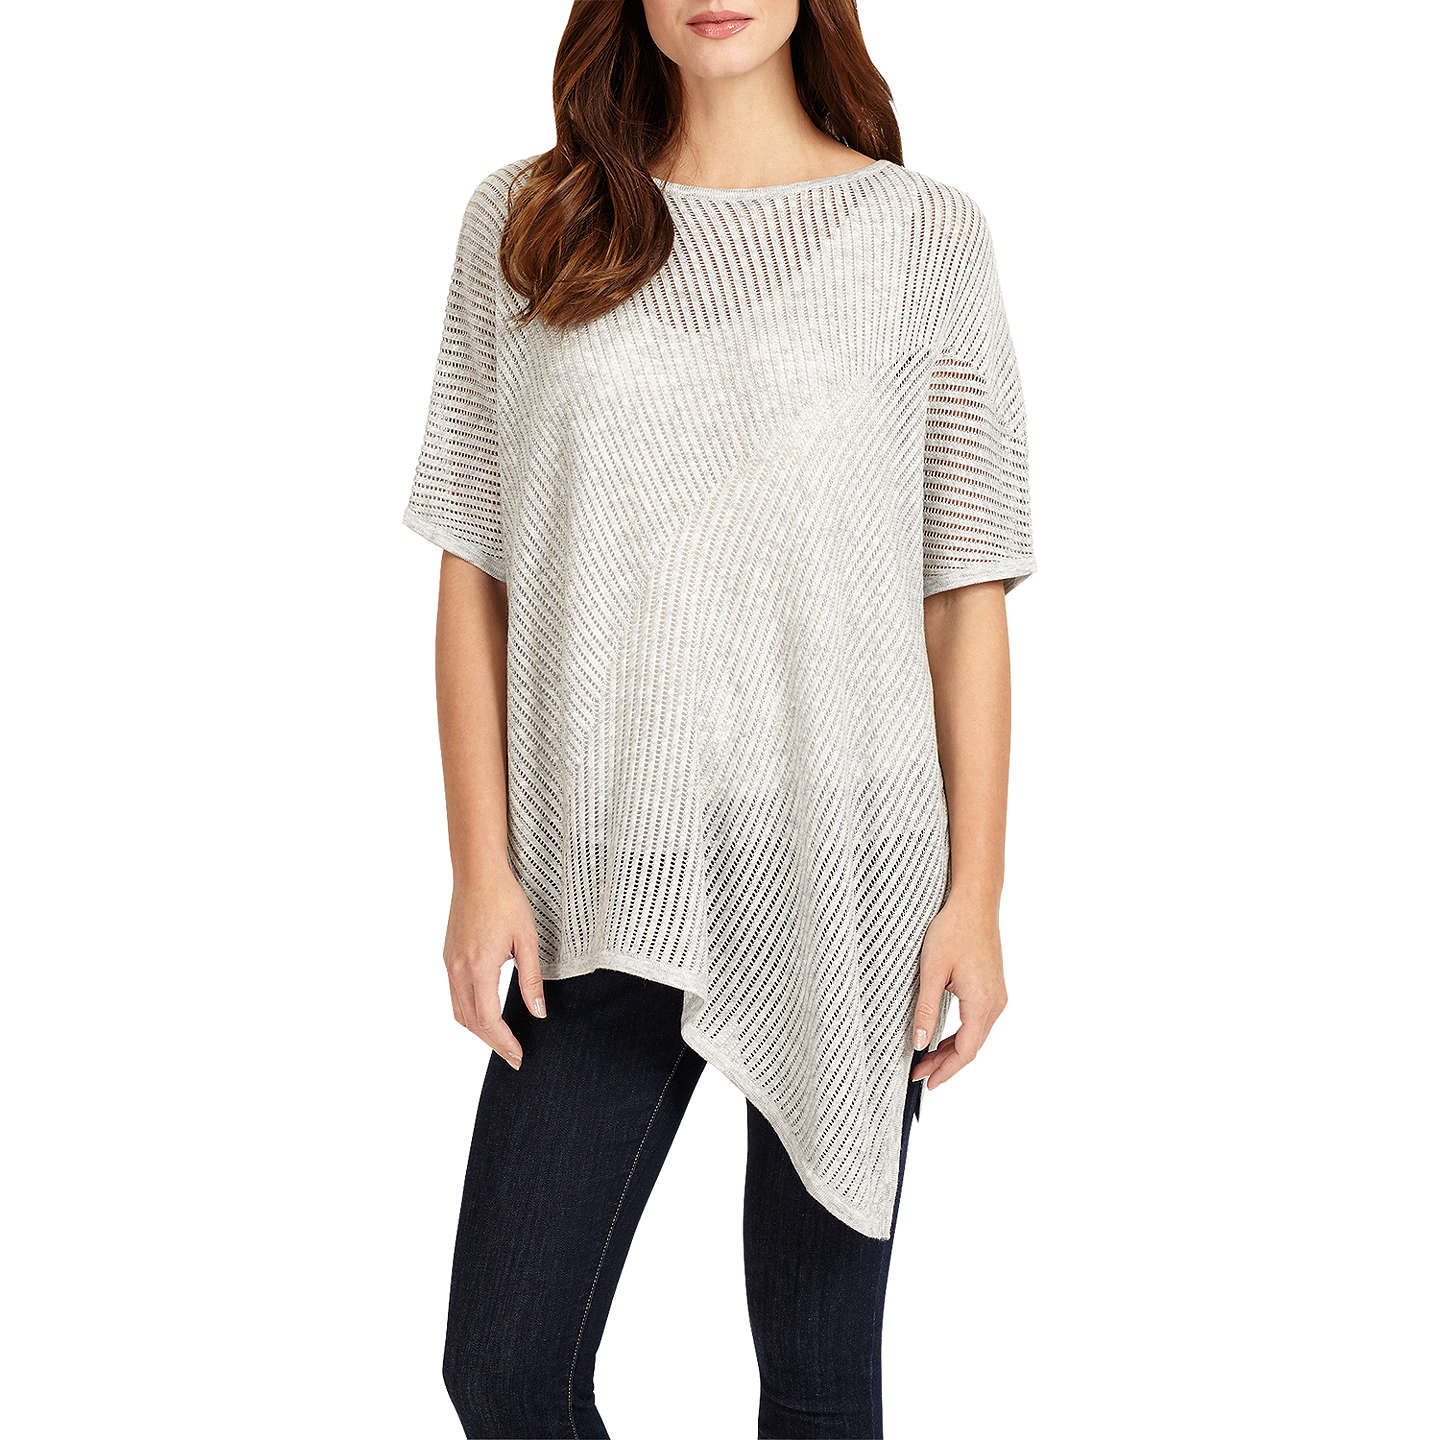 BuyPhase Eight Agnese Asymmetric Knit, Silver, S-M Online at johnlewis.com